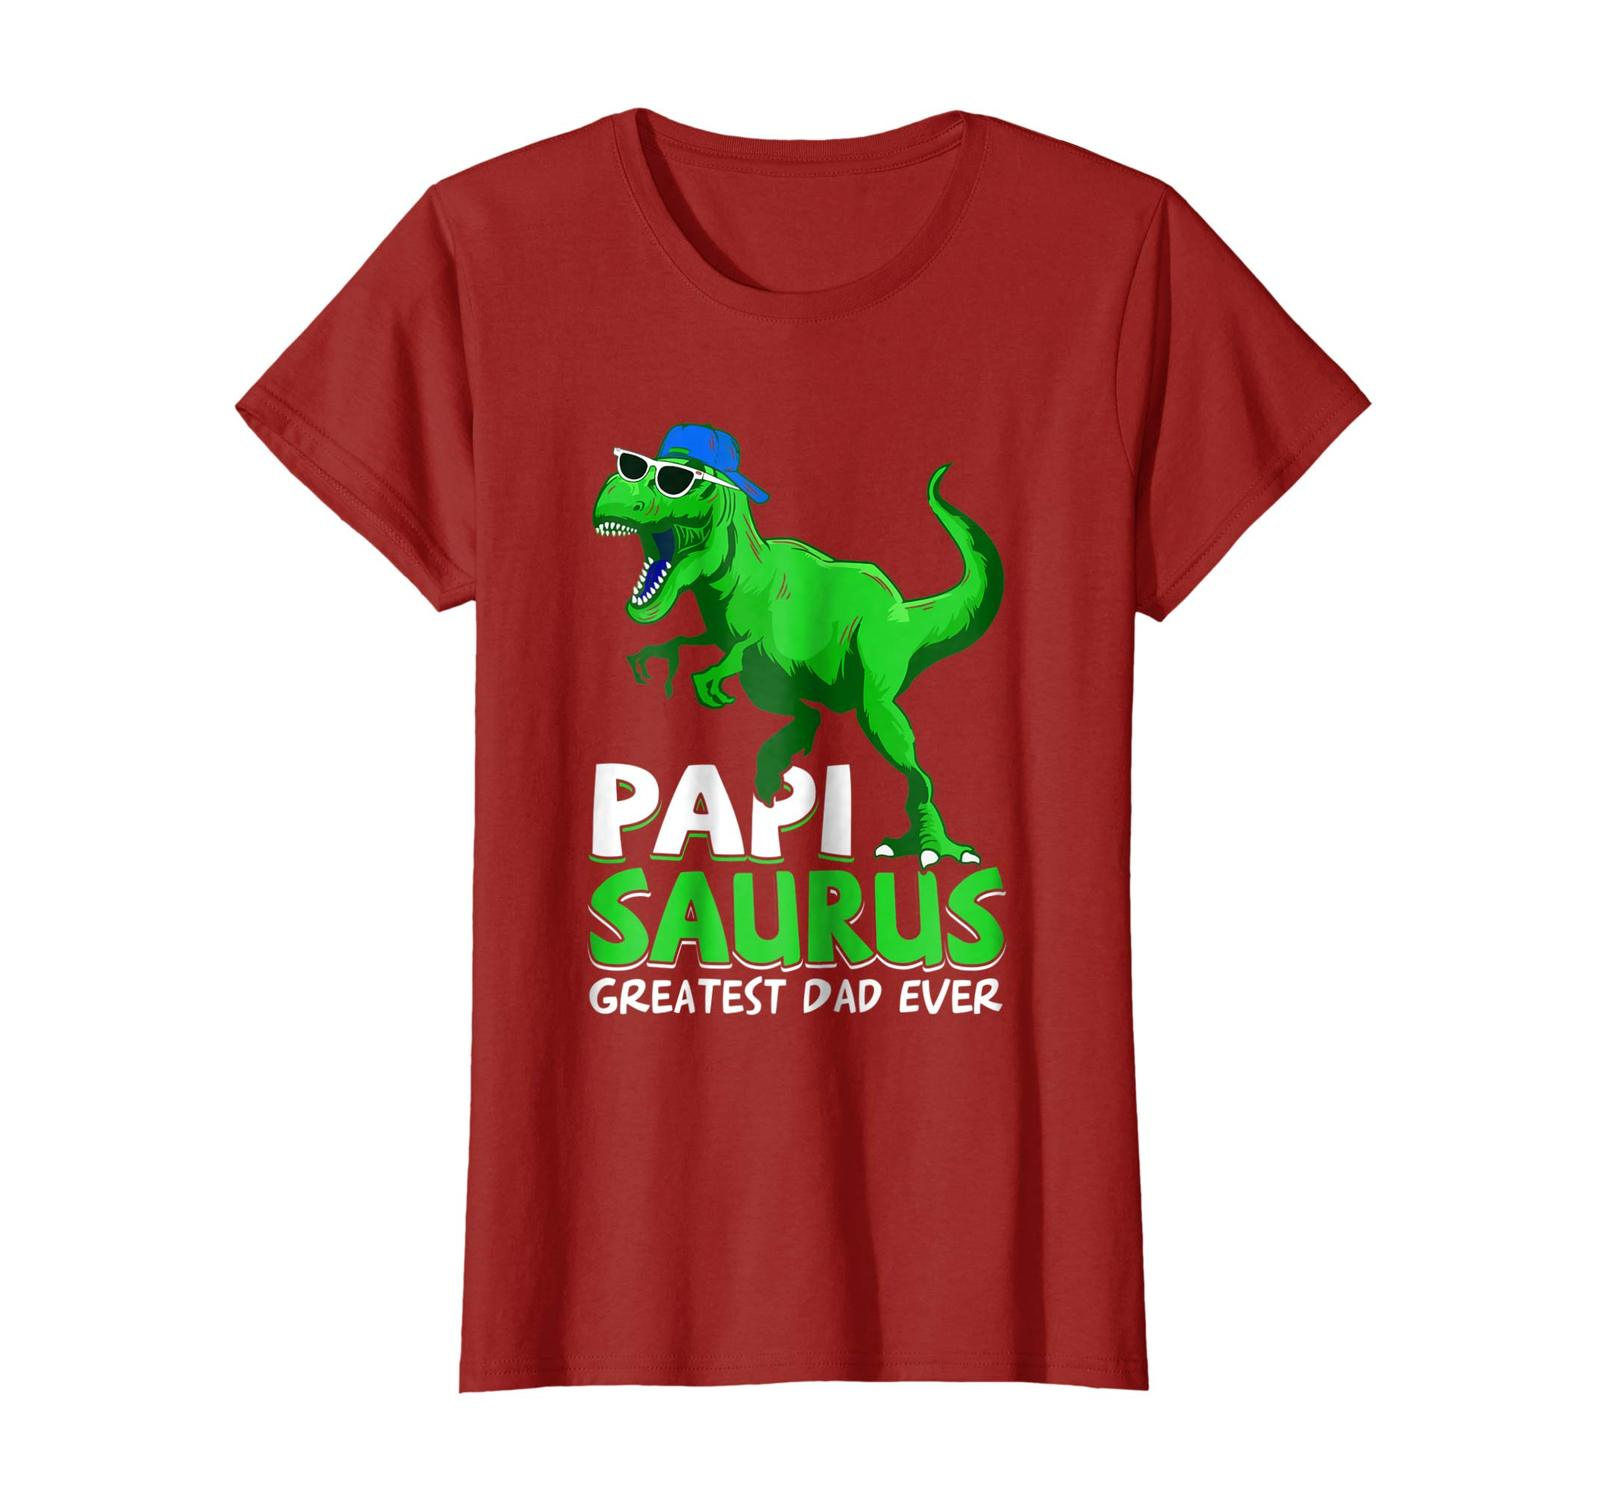 Brother Shirts - Papisaurus T-Shirt | Greatest Dad Ever 2018 T-Shirt Wowen